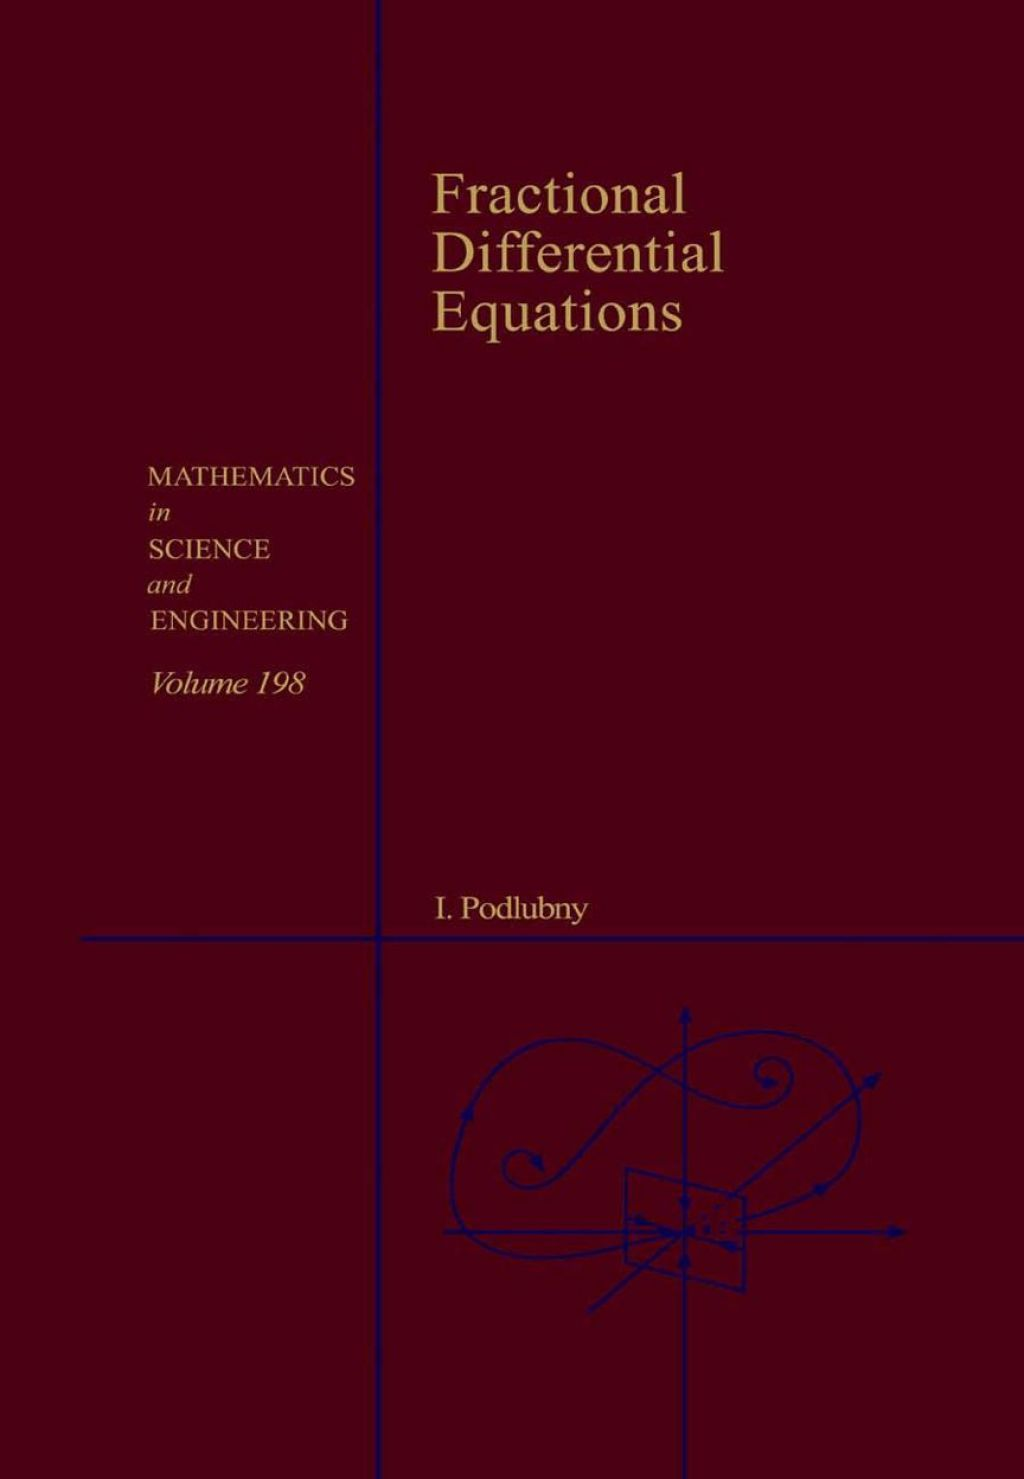 Pin By Paul Gowan On Physics Differential Equations Equations Ebook